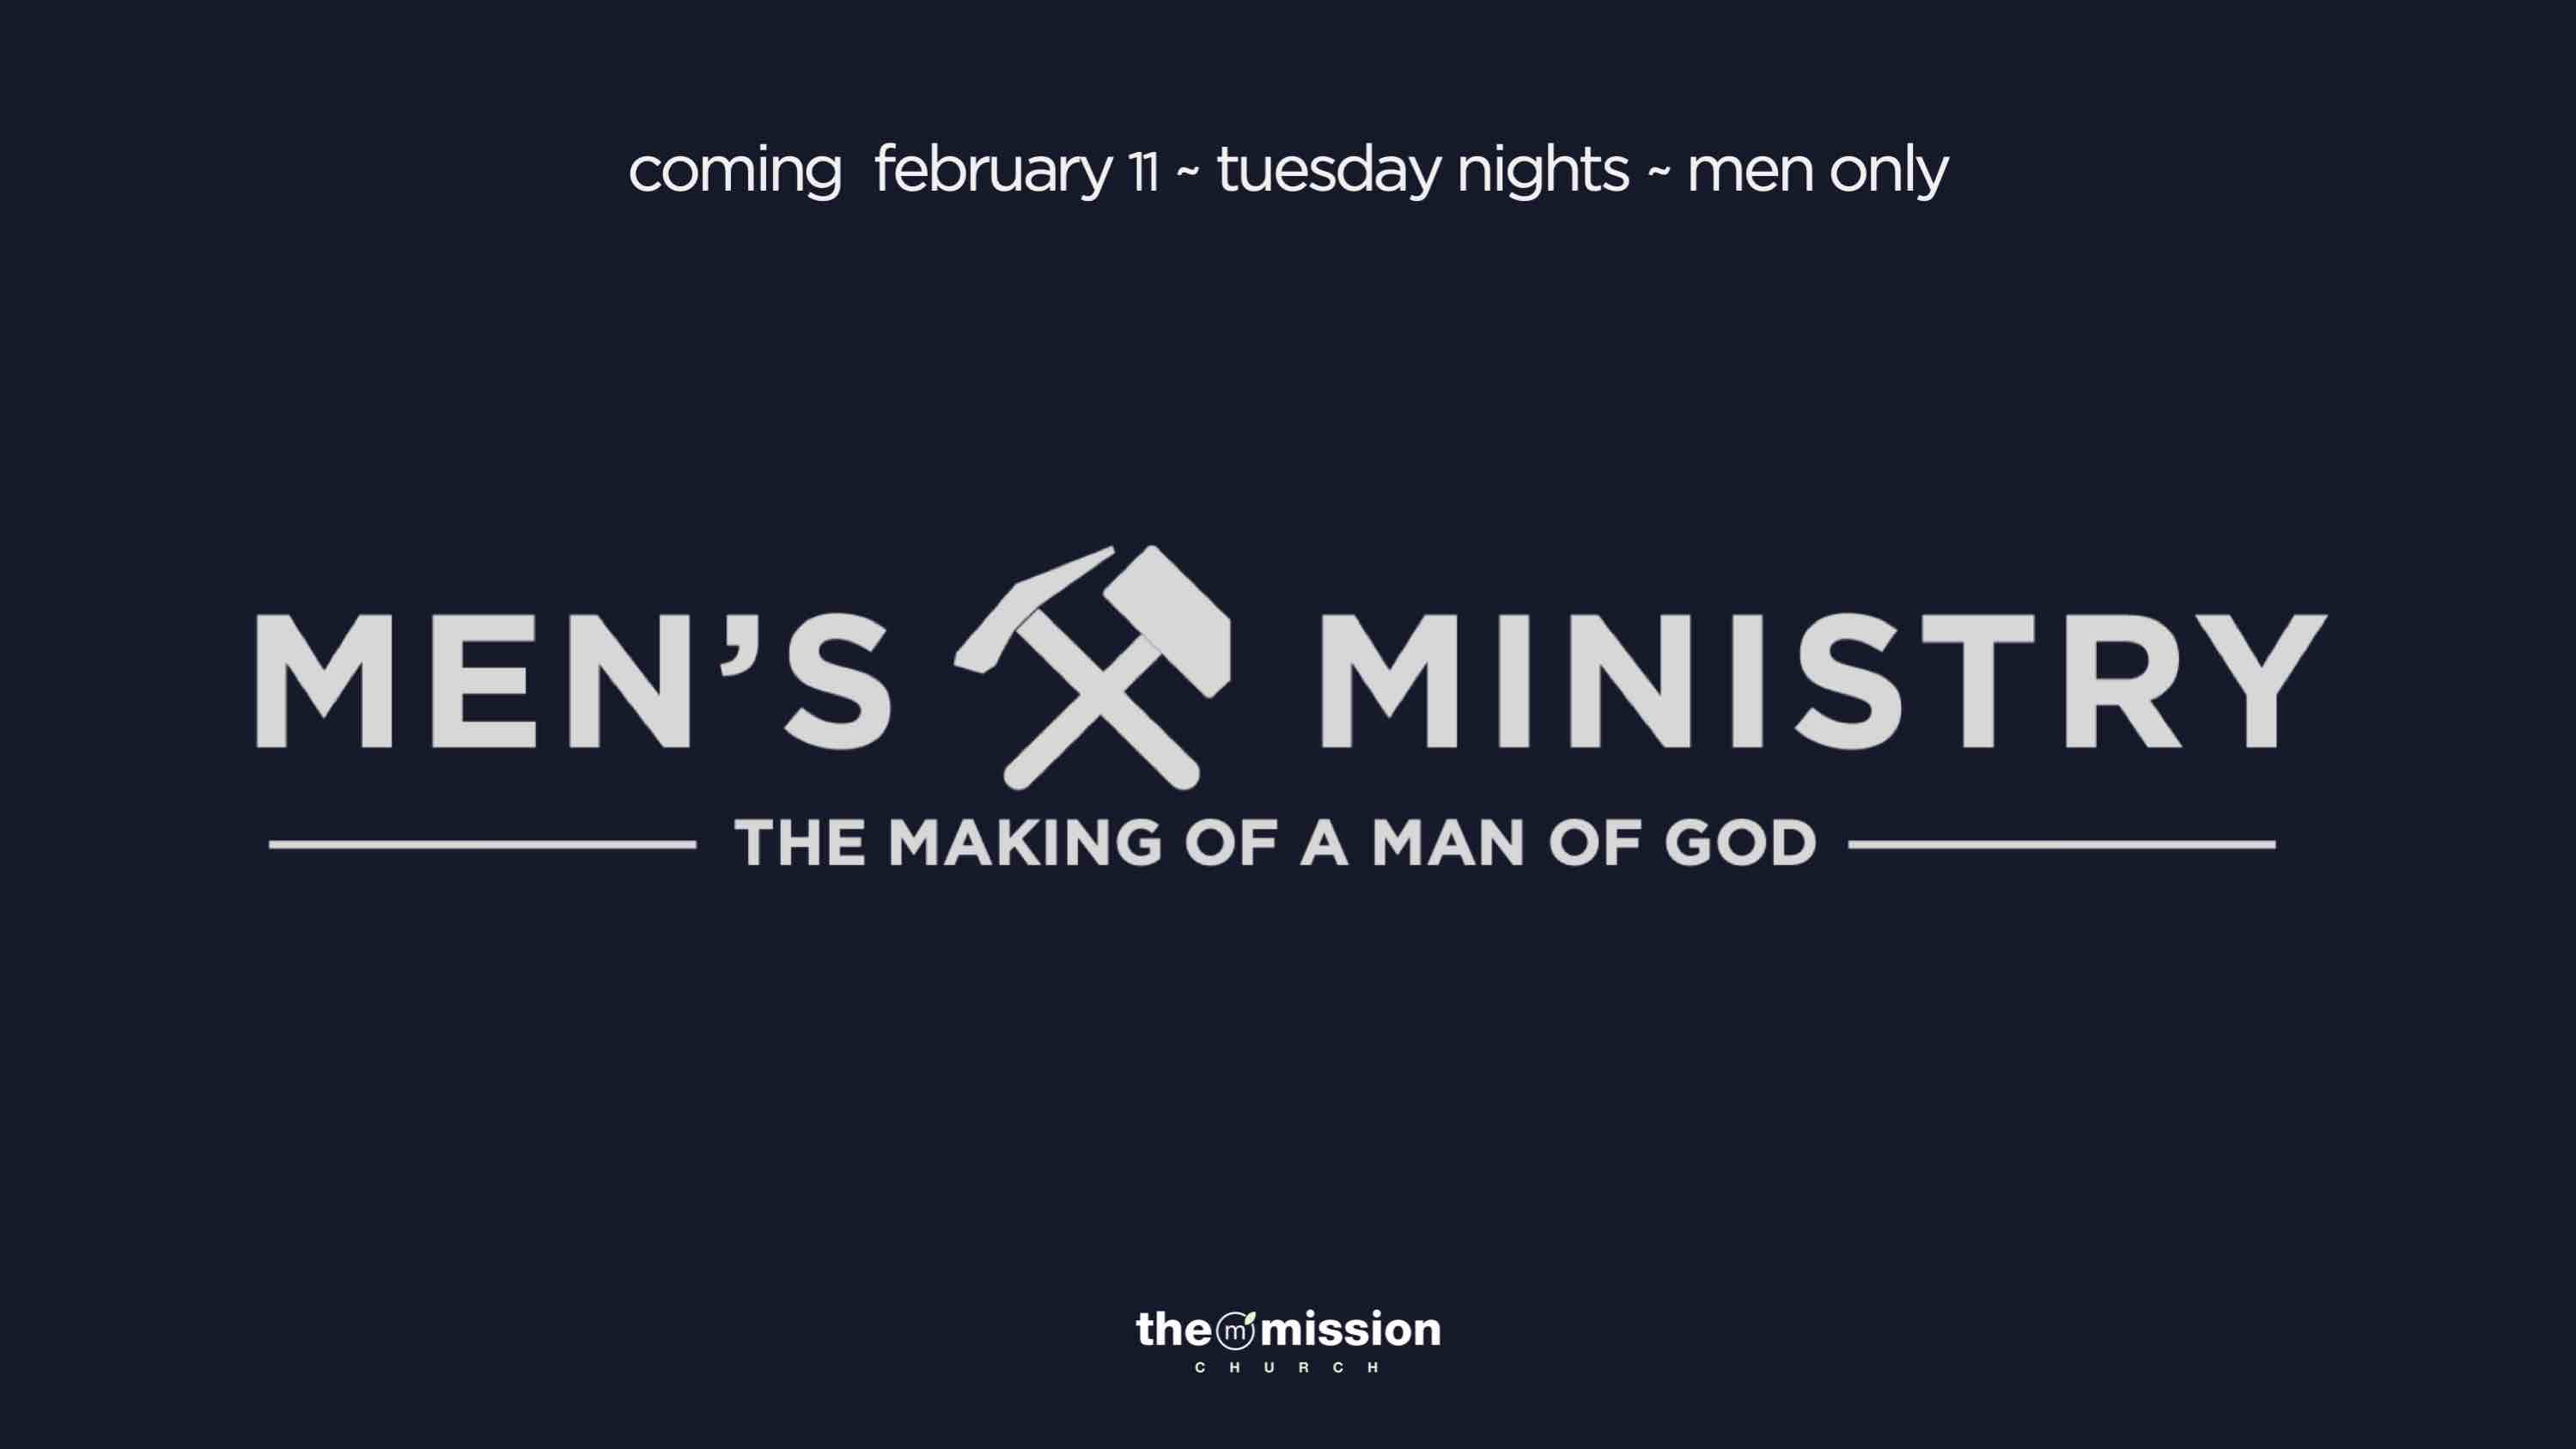 Men's Ministry in Carlsbad